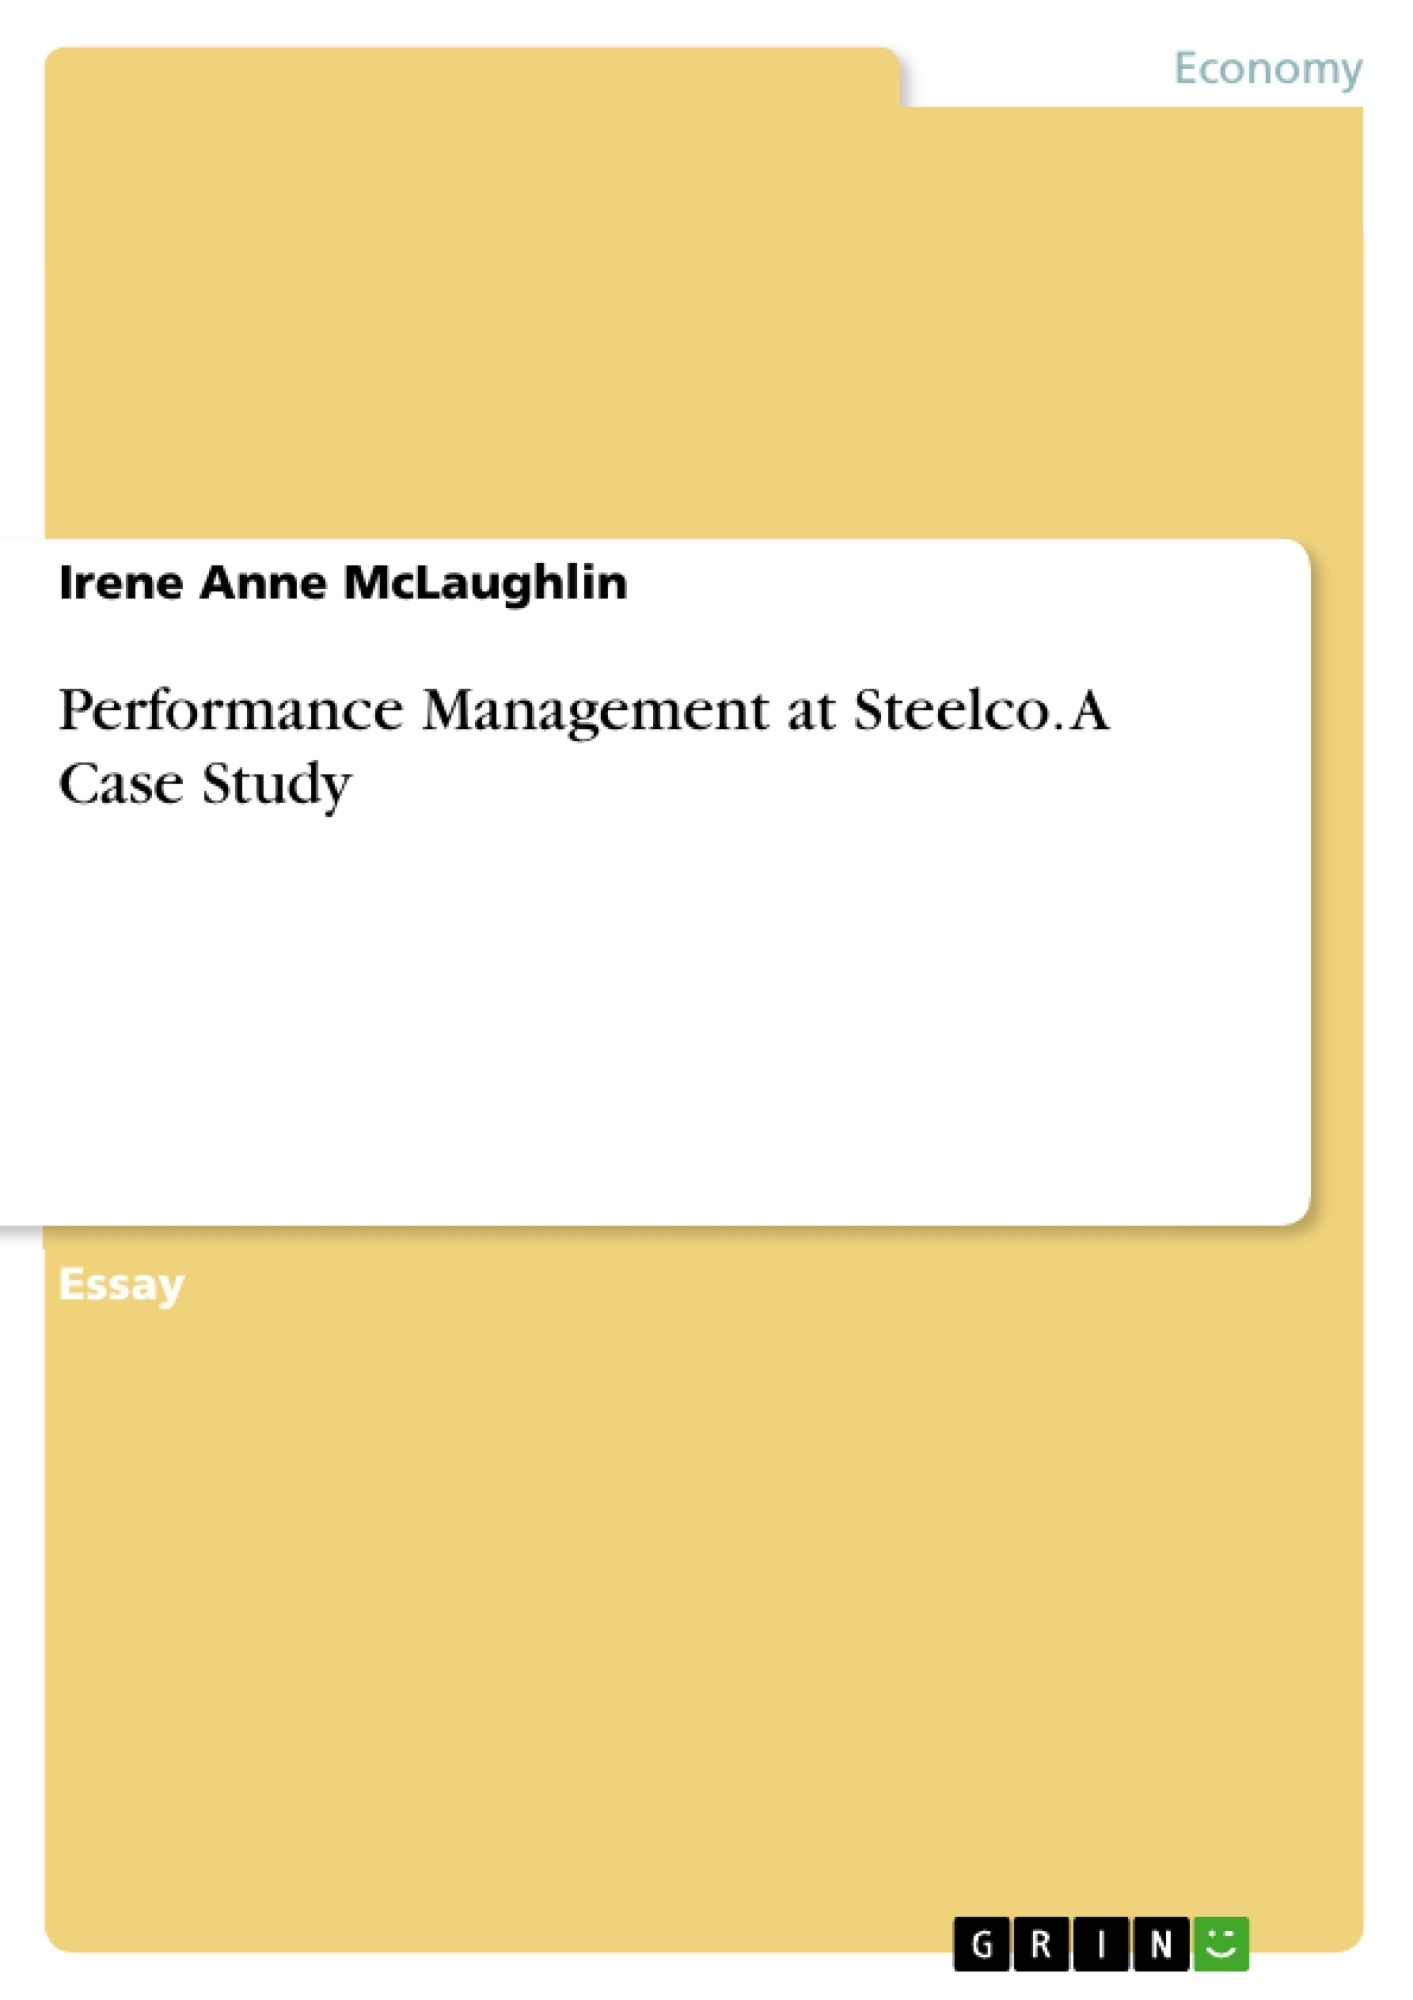 performance management at steelco a case study publish your  upload your own papers earn money and win an iphone x